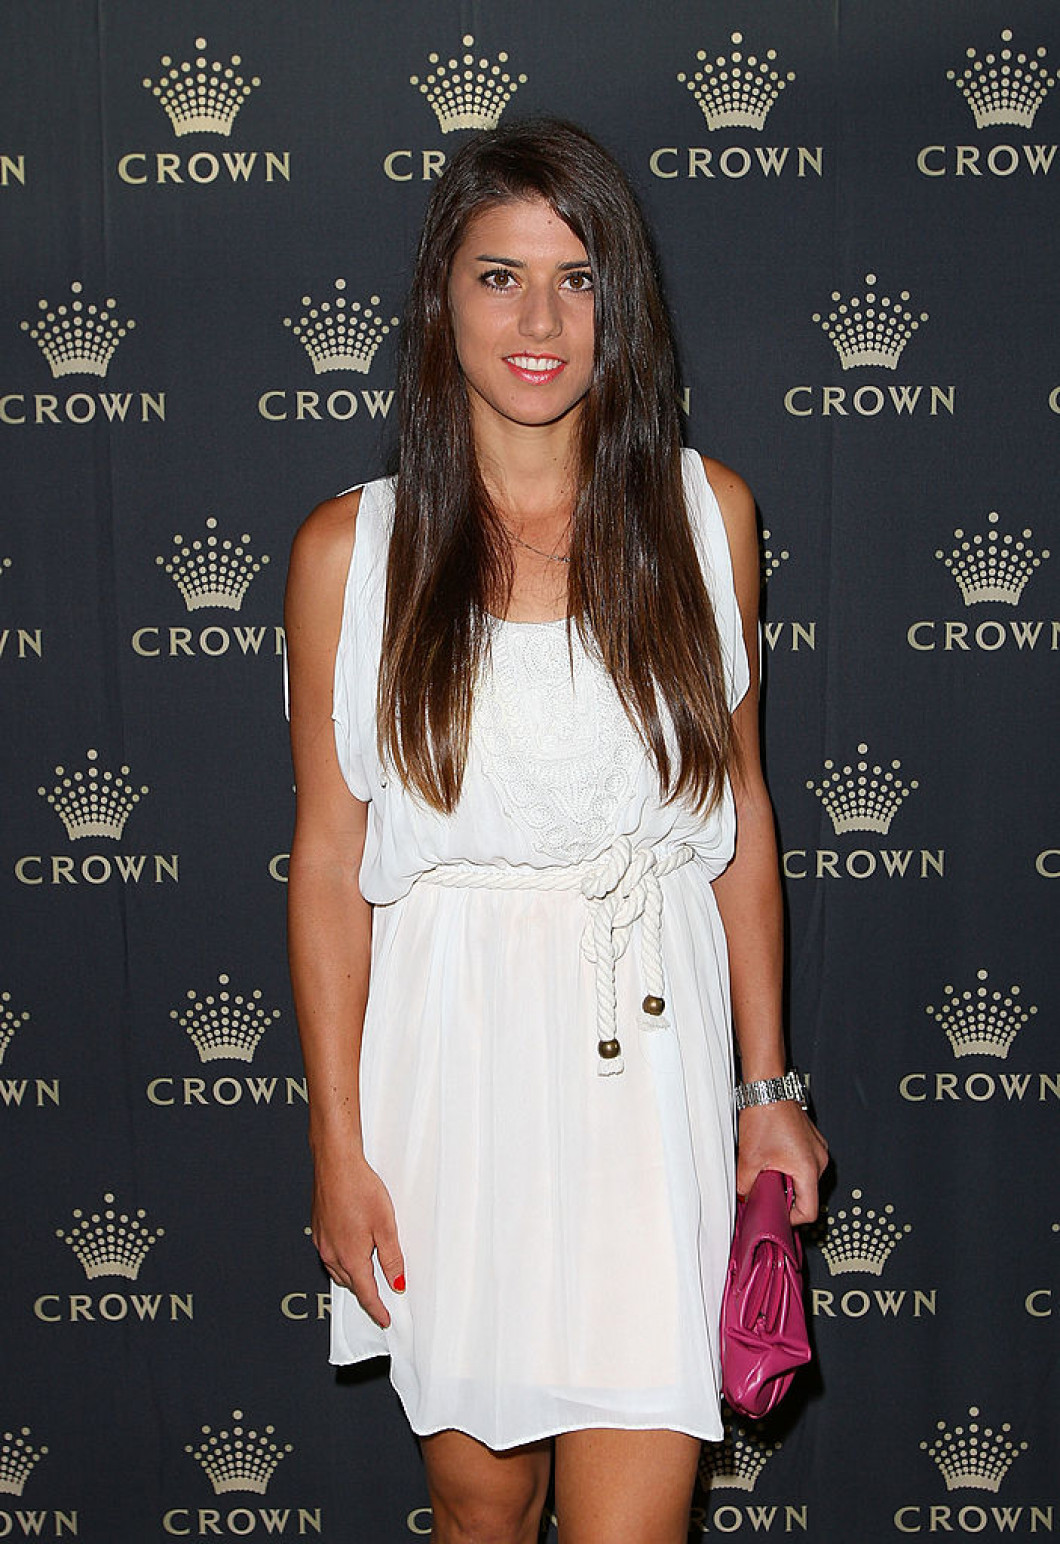 Crown's Tennis Players' Party